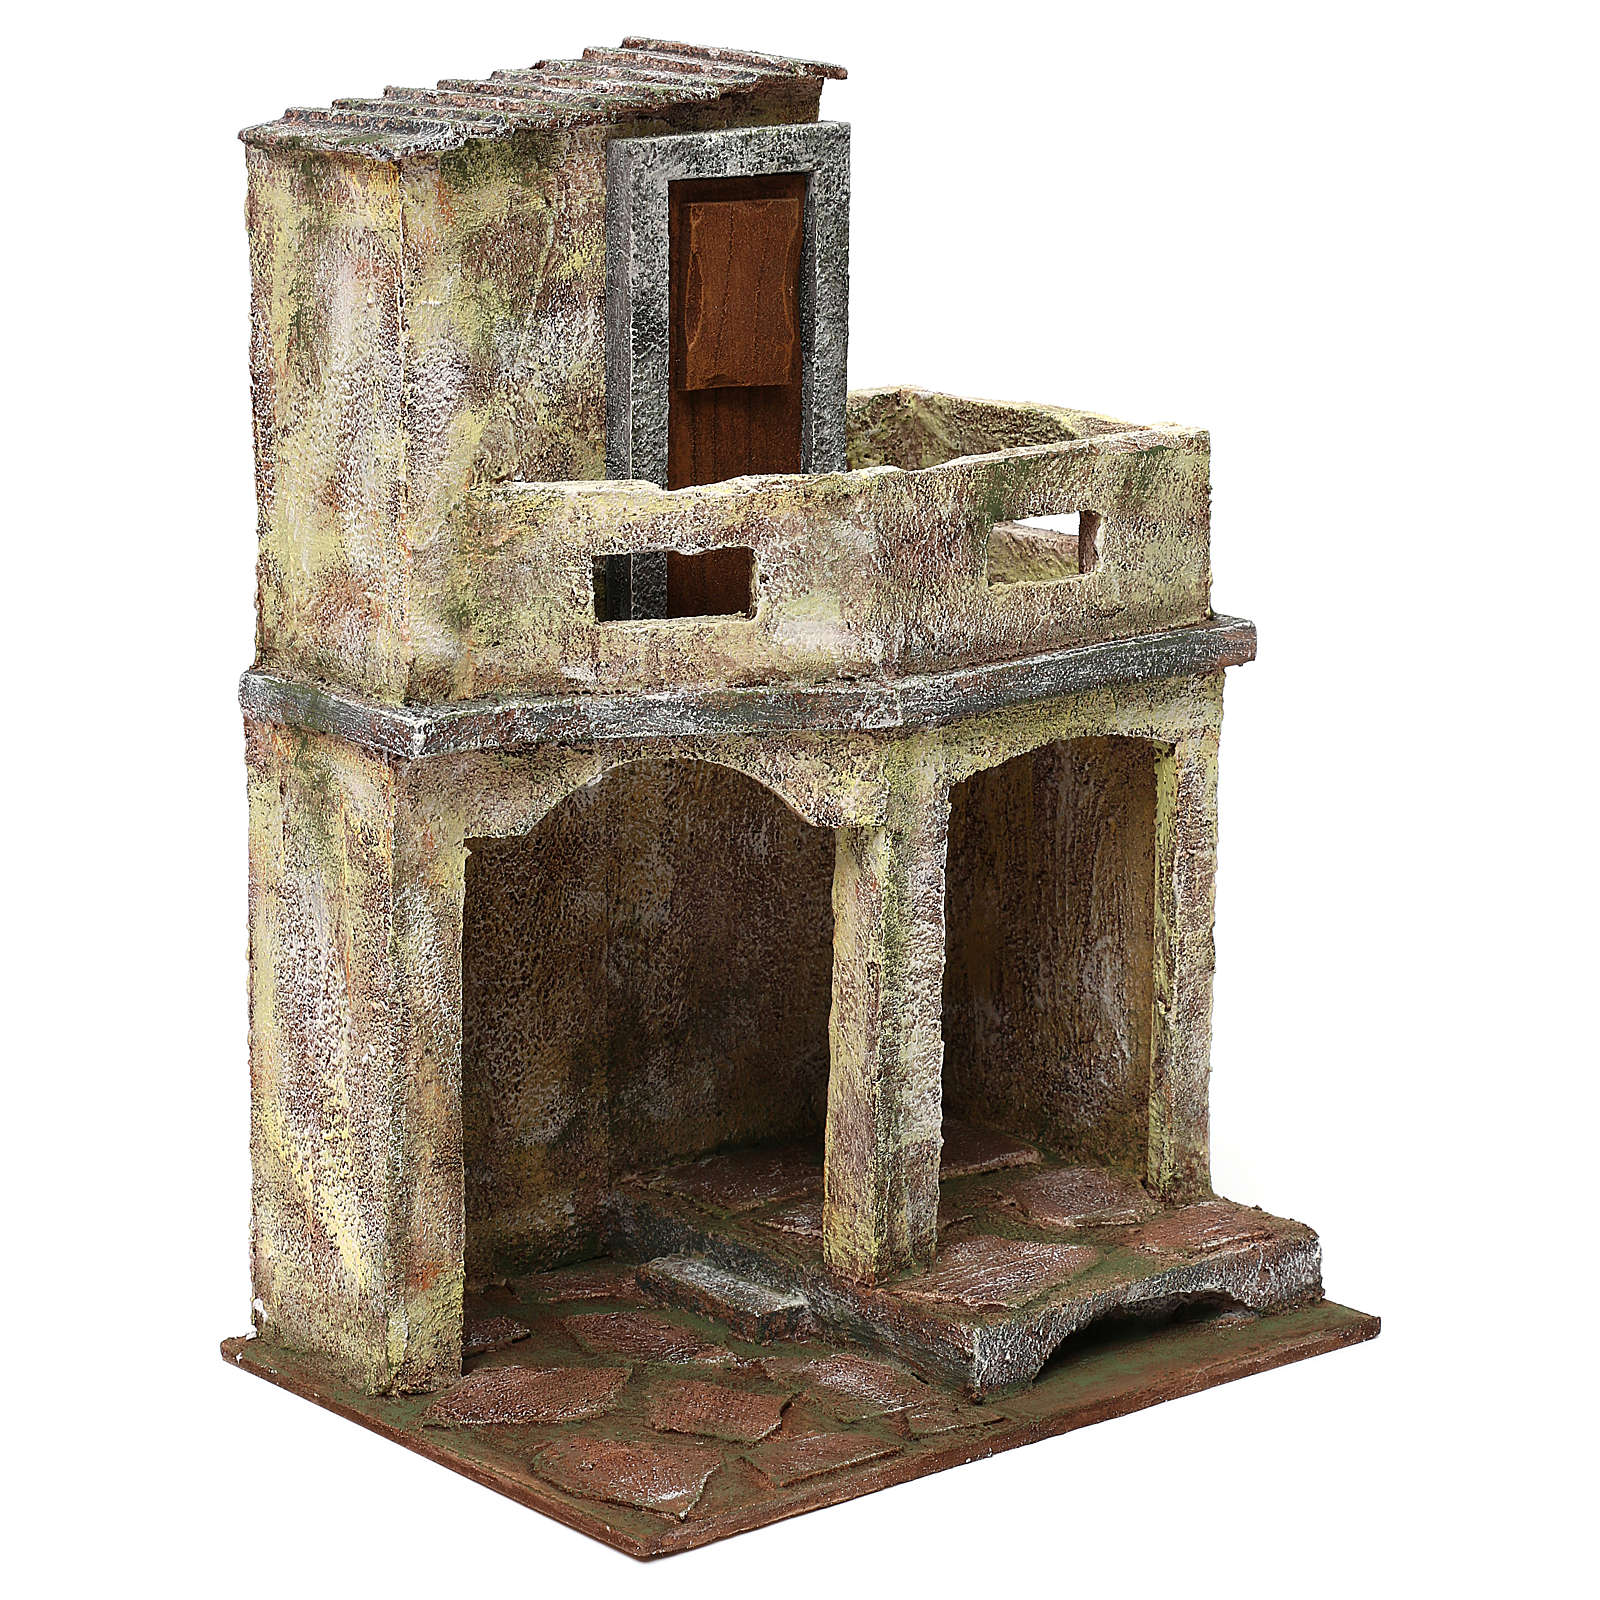 Building with balcony and shelter for 12 cm Nativity scene, 35x25x20 cm 4